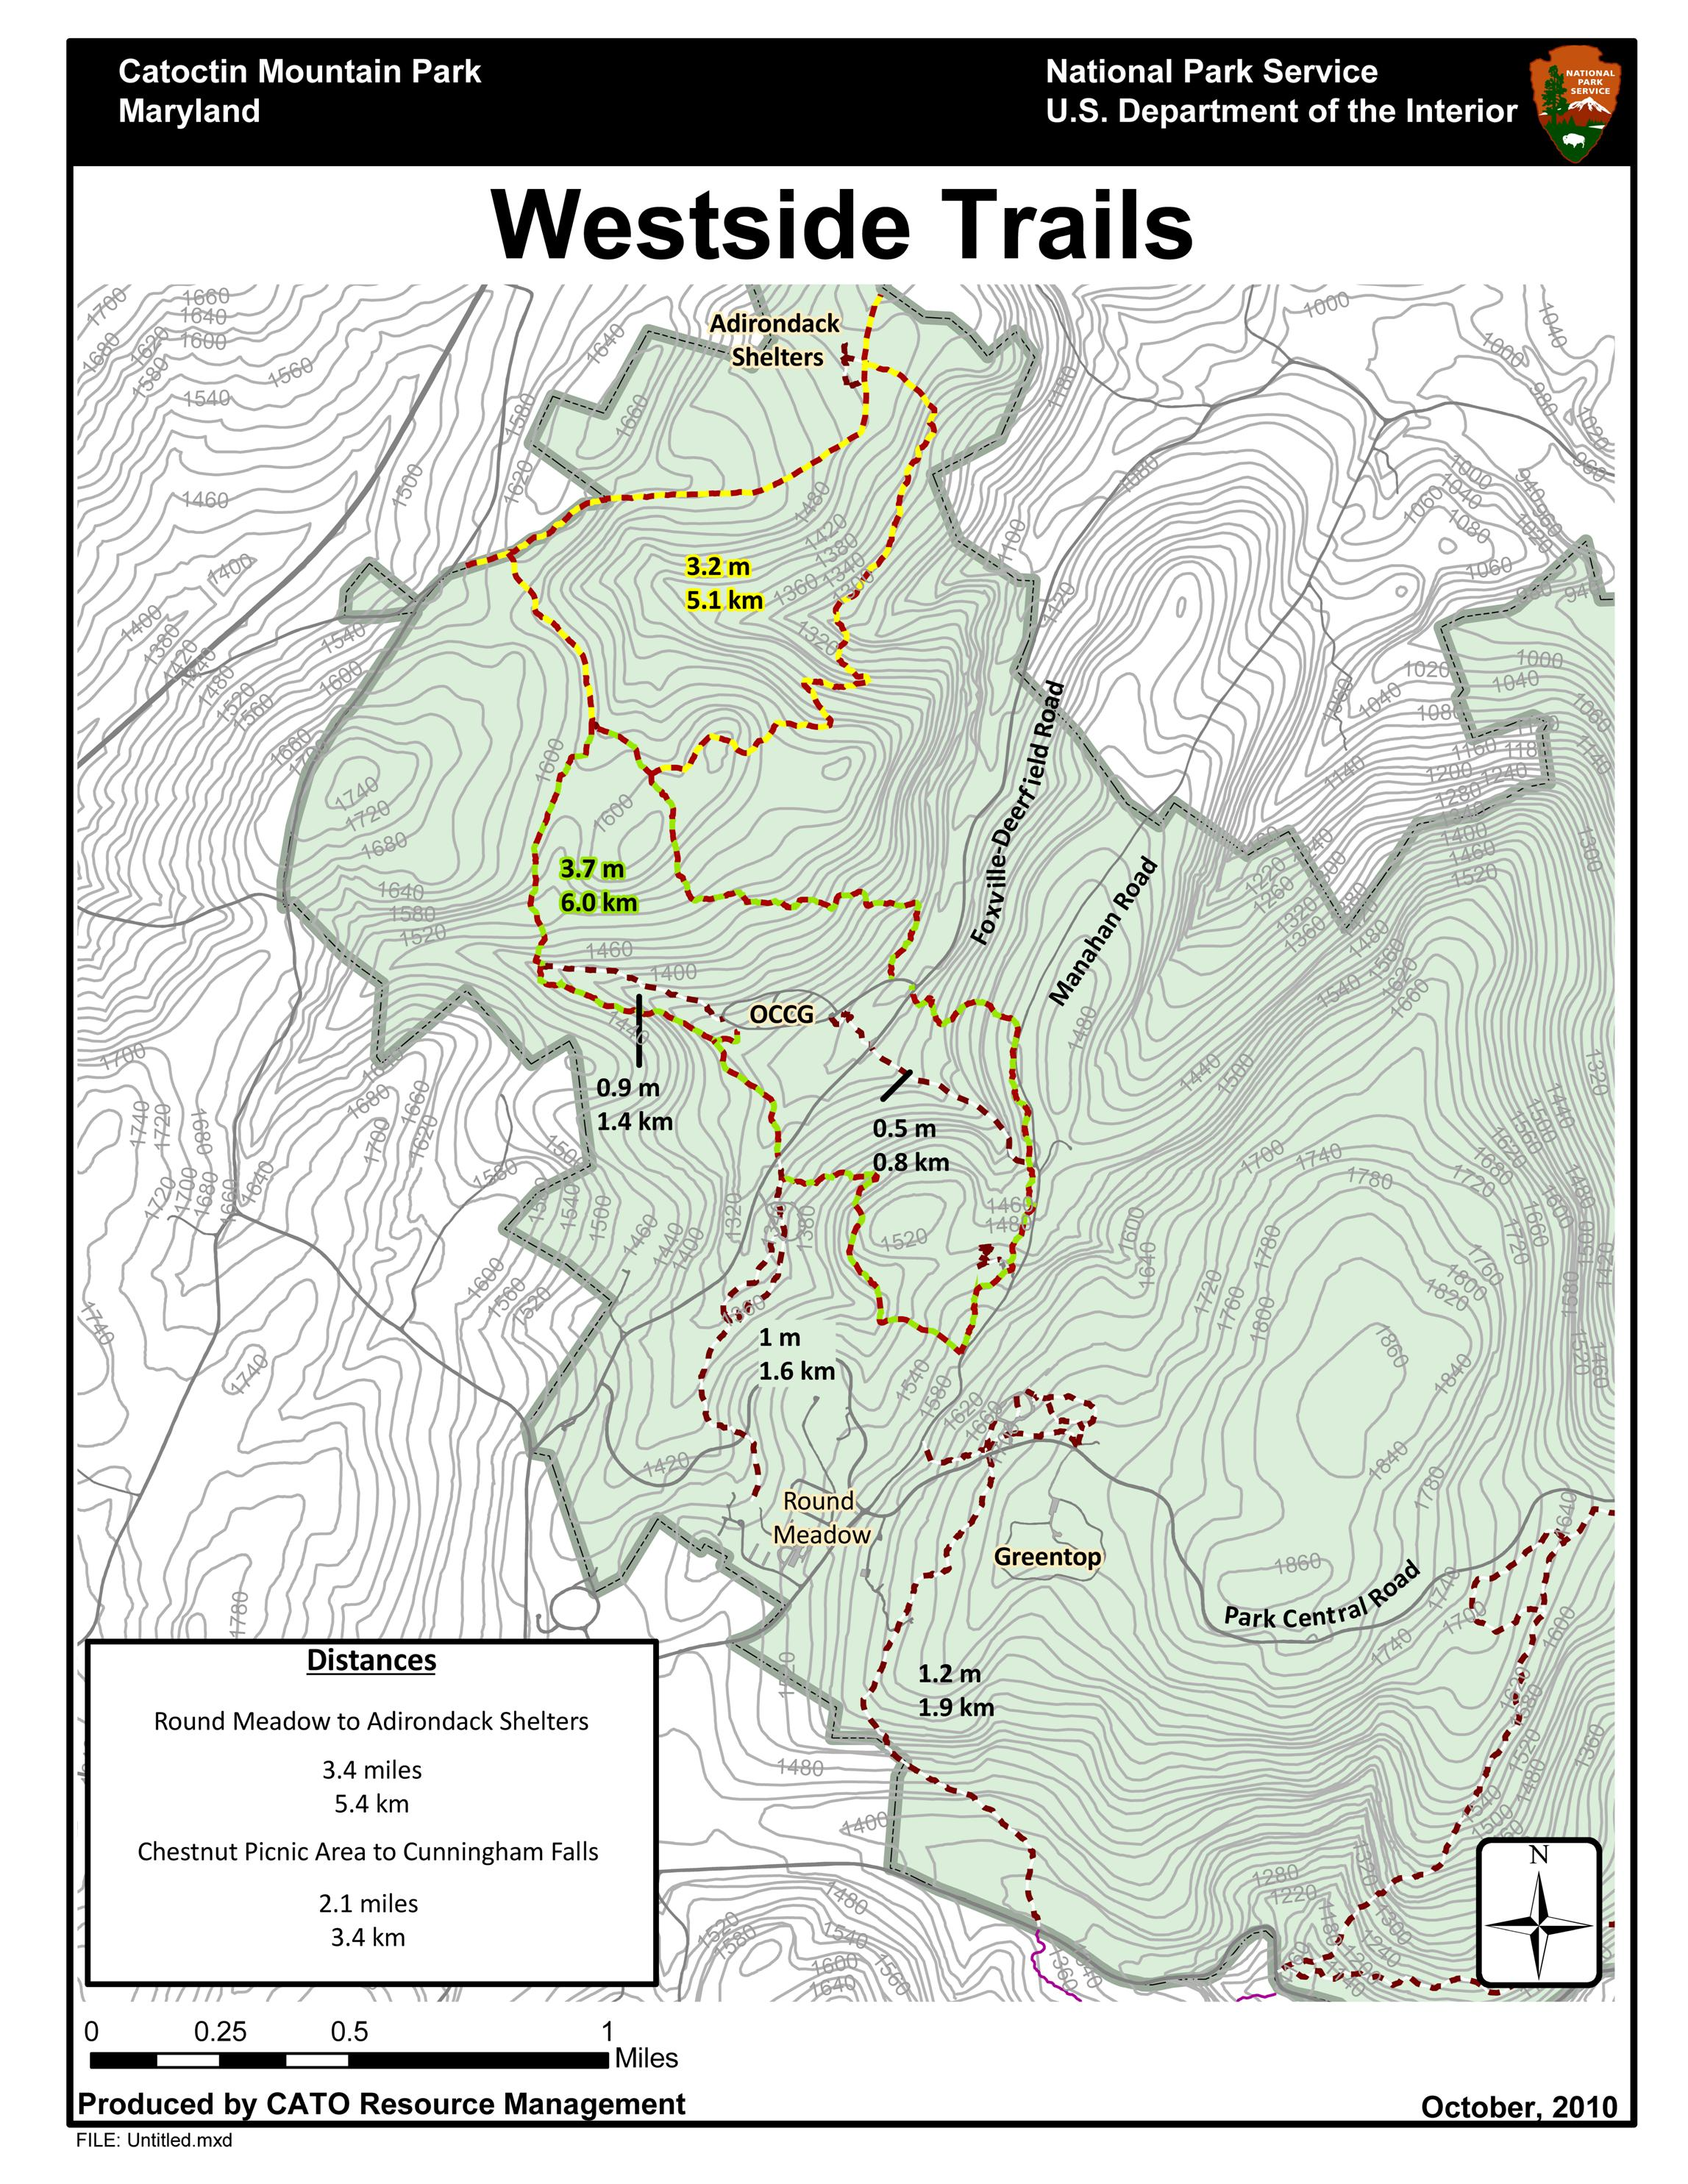 West Hiking Trails Catoctin Mountain Park US National Park